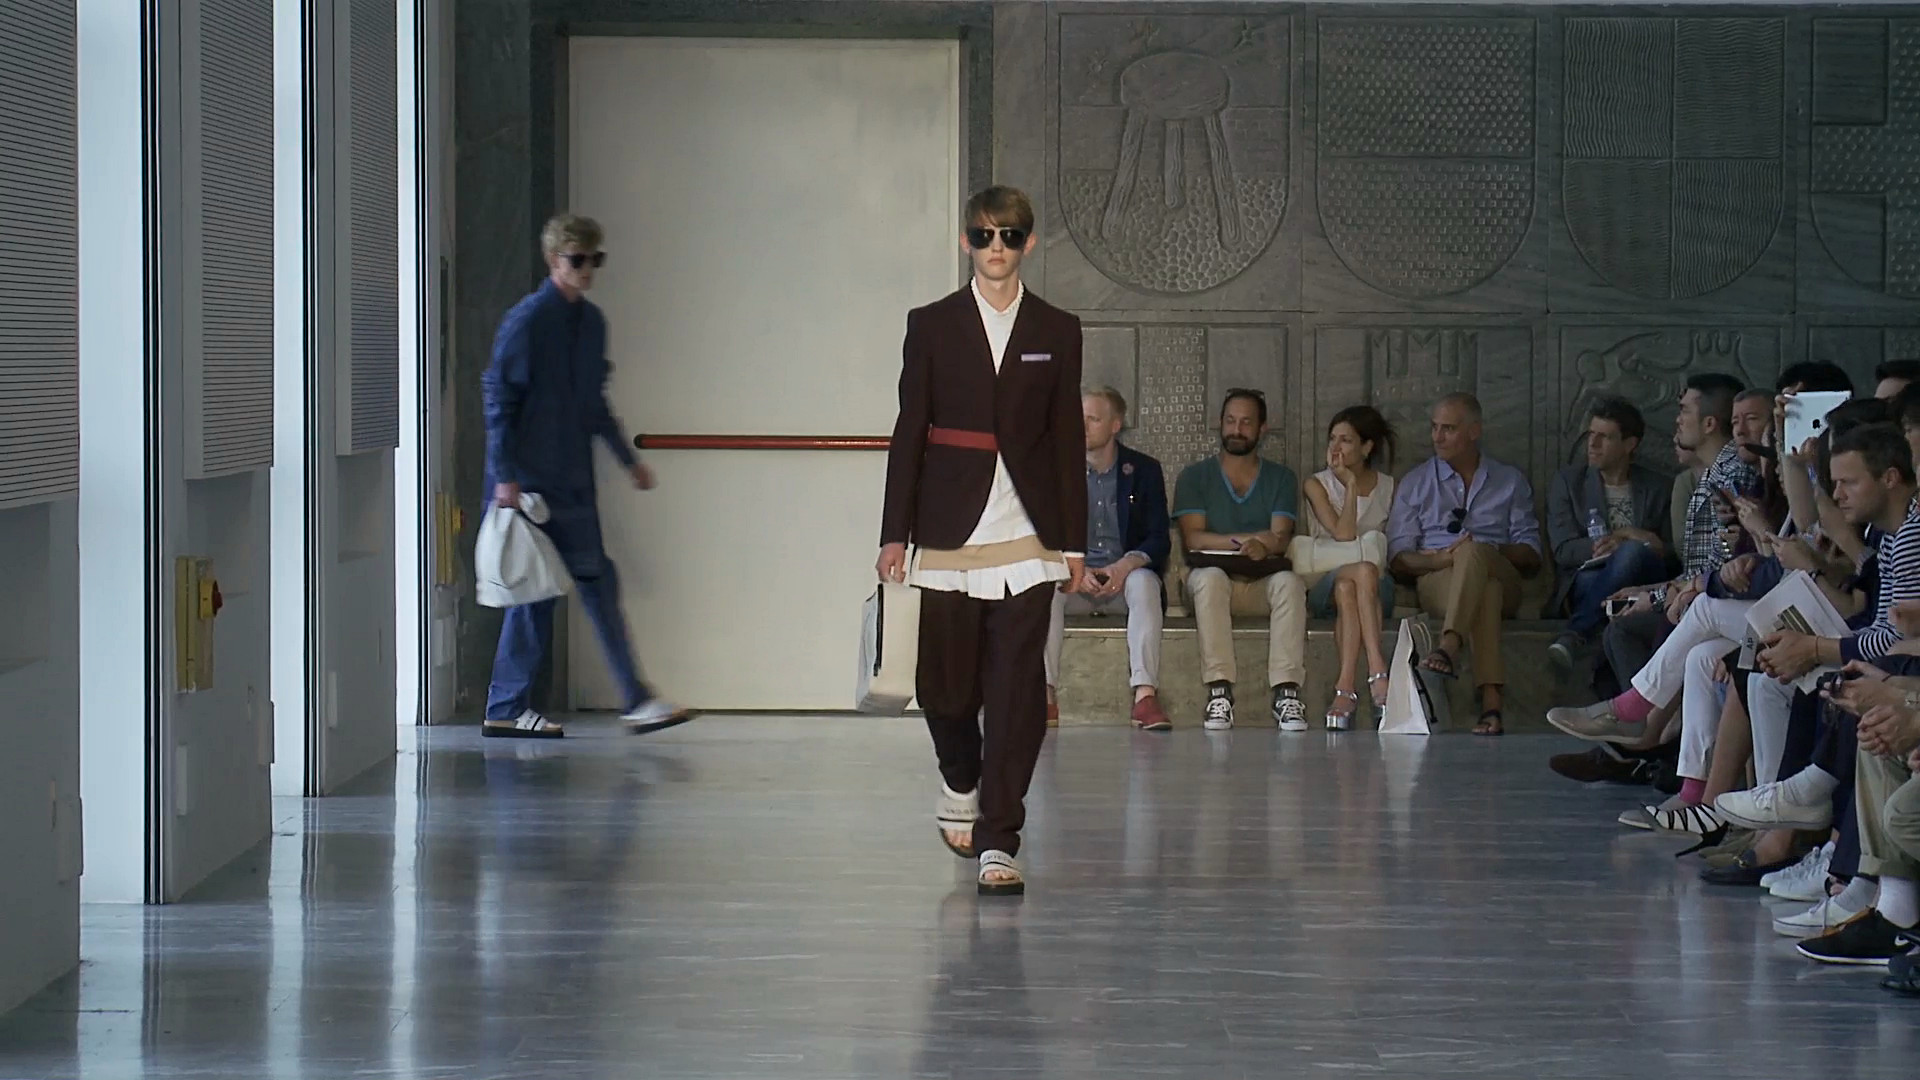 Andrea Pompilio Spring Summer 2015 Men's Fashion Show - Milano Fashion Week